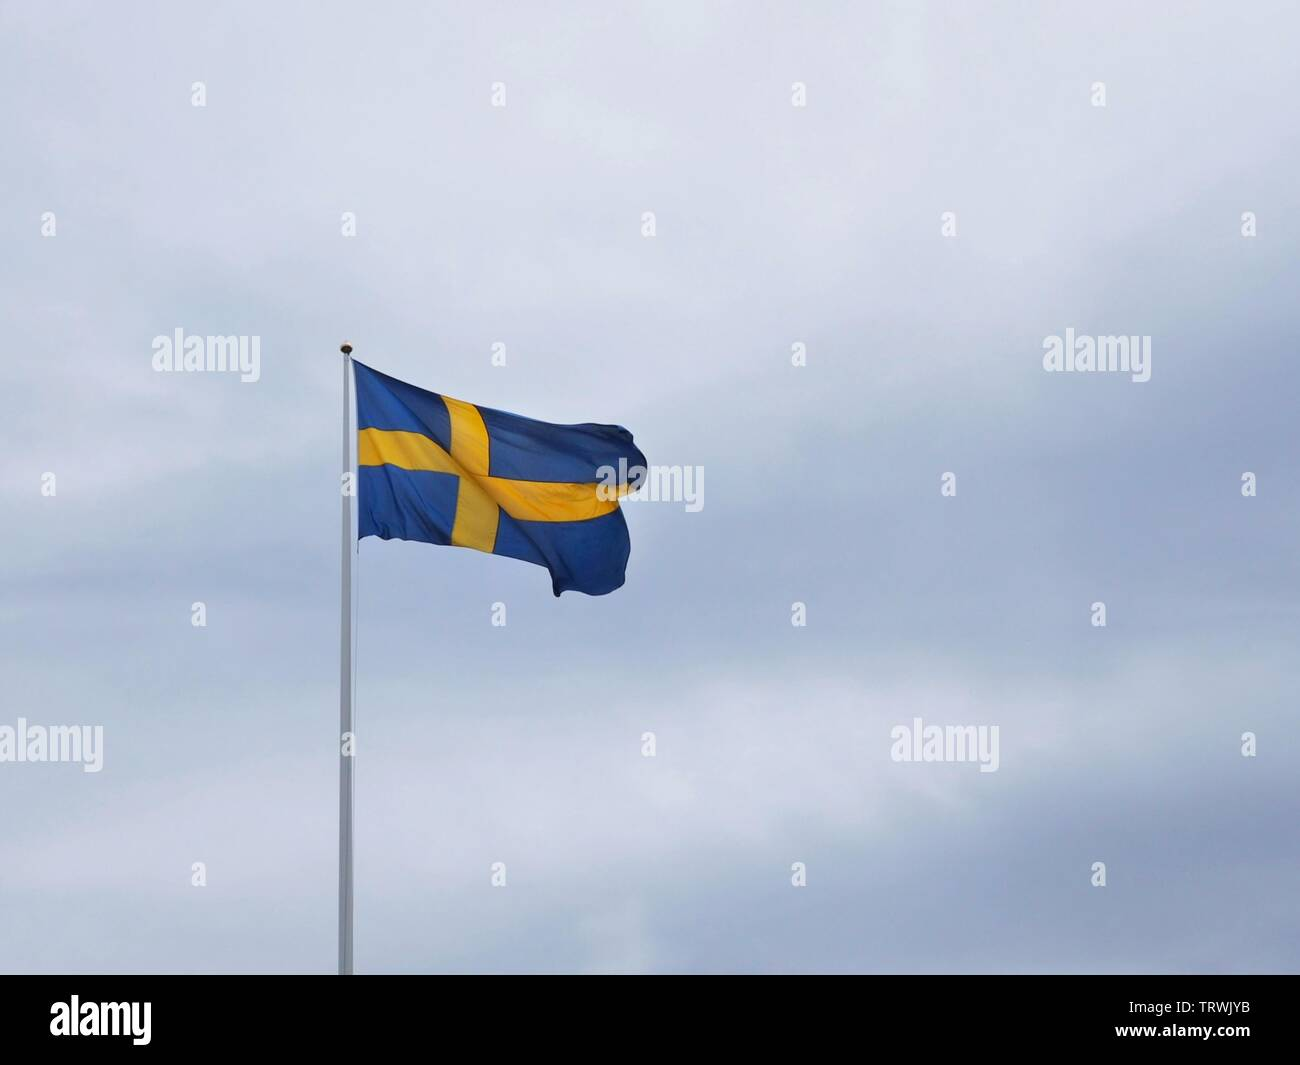 The swedish flag waving in the wind in a grey cloudy sky. - Stock Image